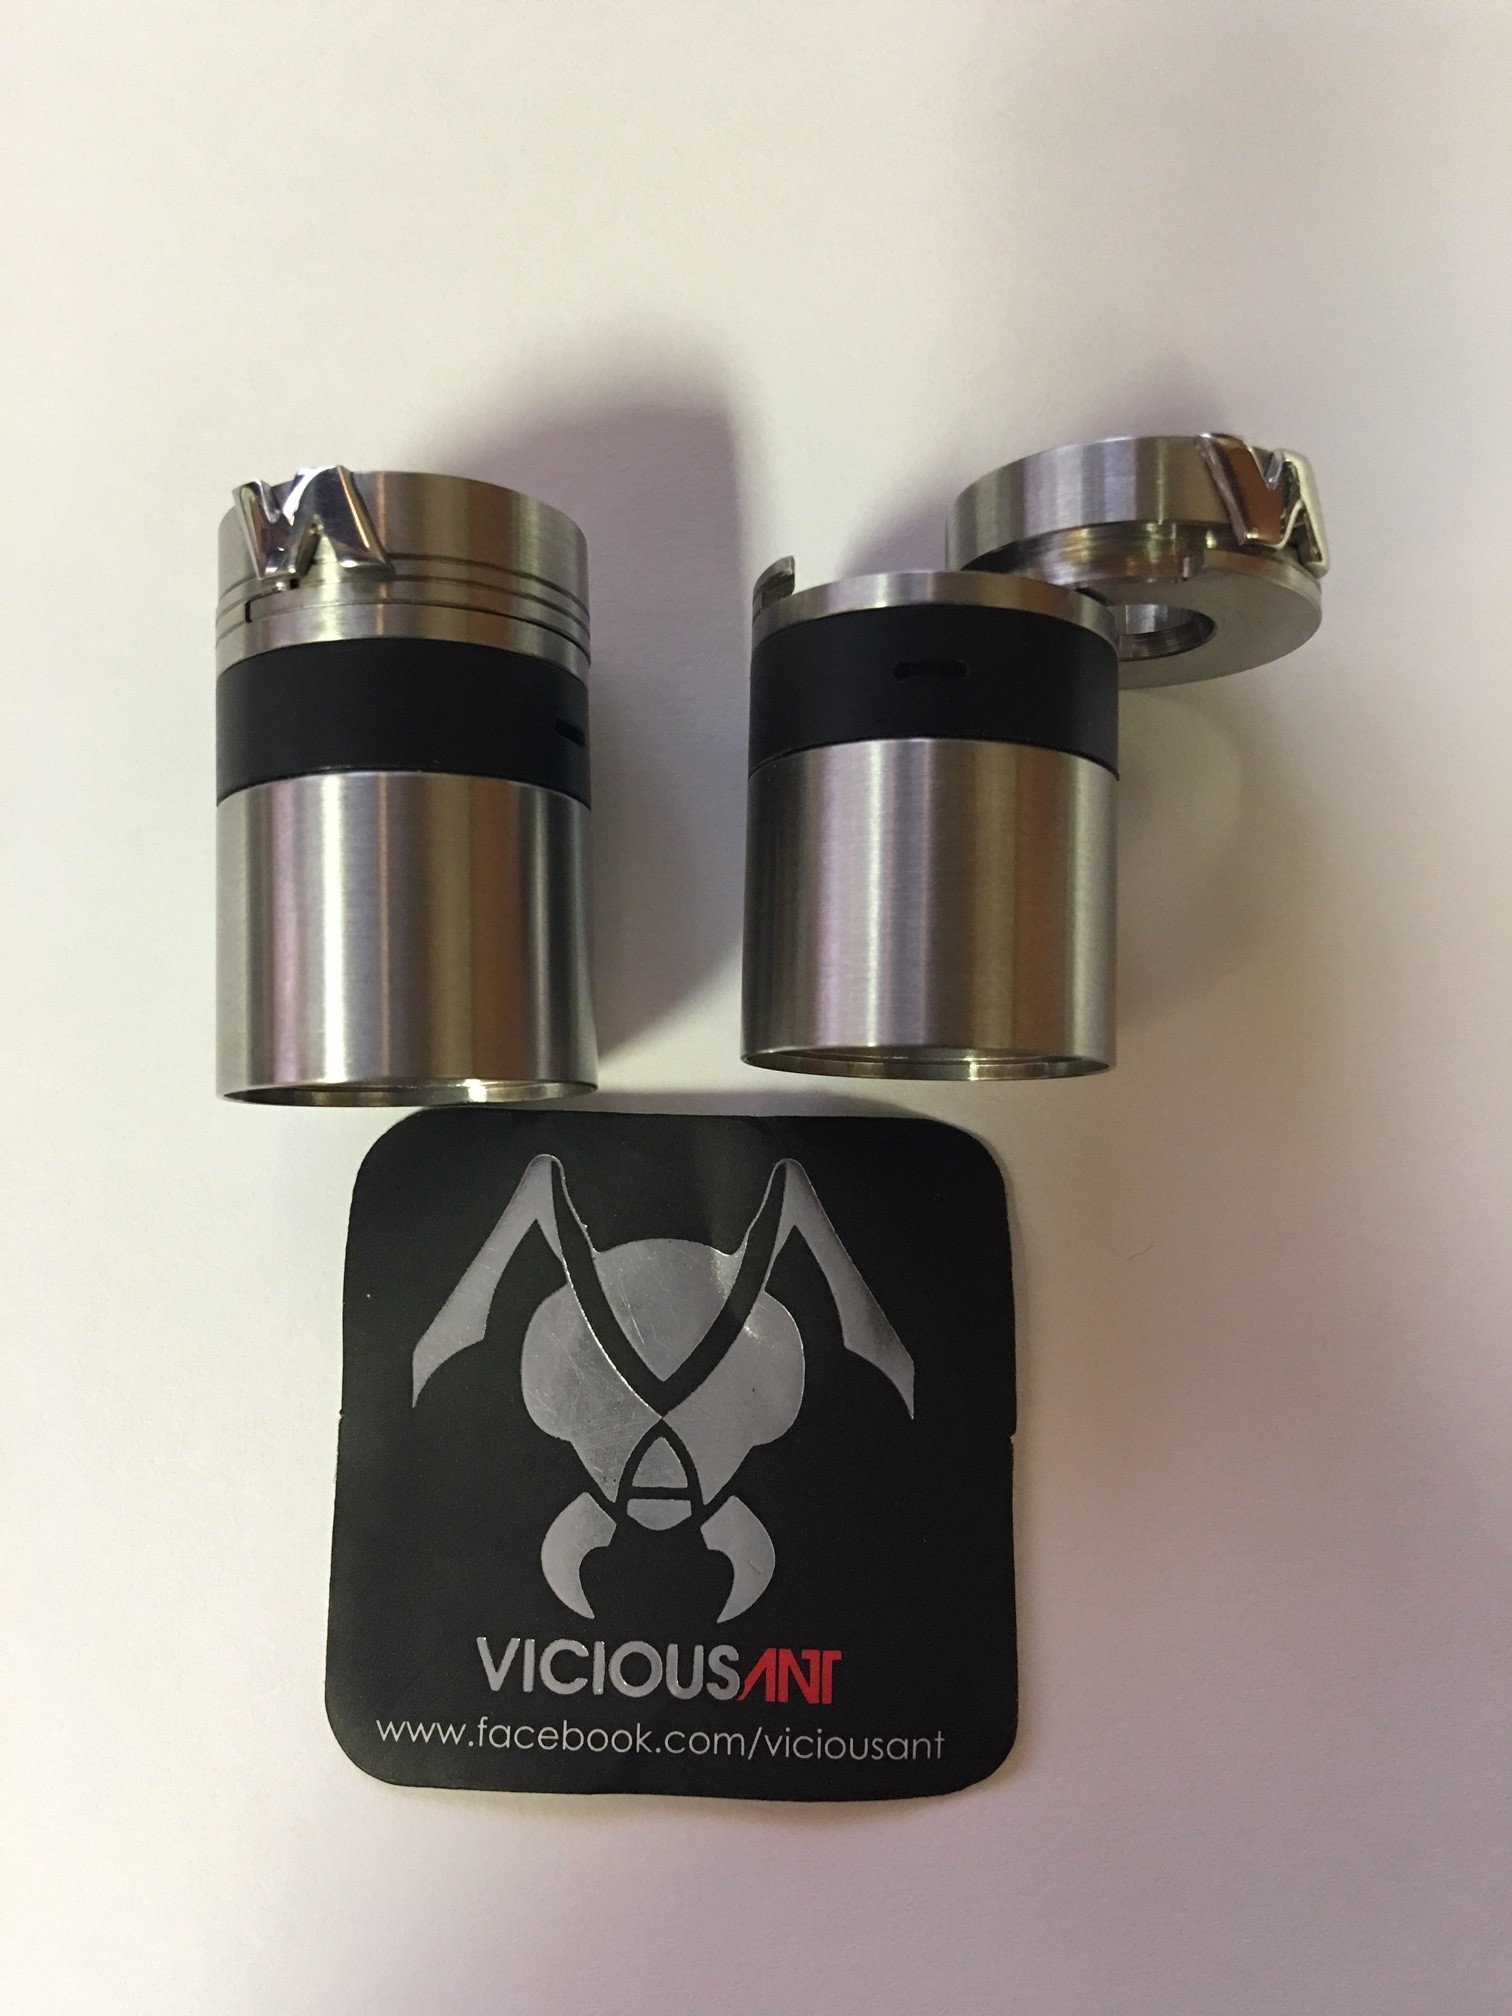 Vicious Ant Prodigy Swing Top Cap by Vicious Ant